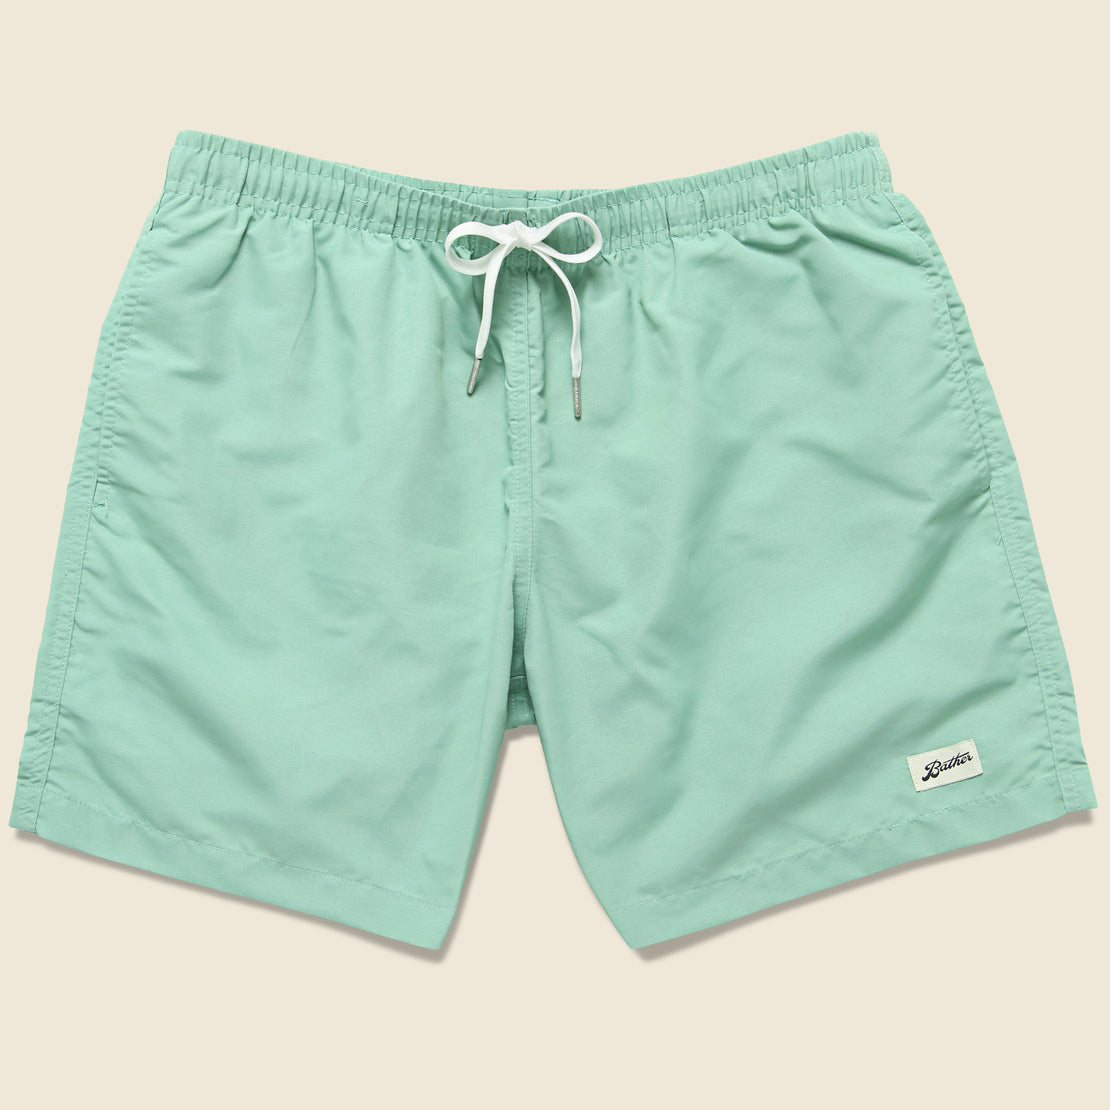 Bather Trunk Co. Solid Swim Trunk - Sea Foam